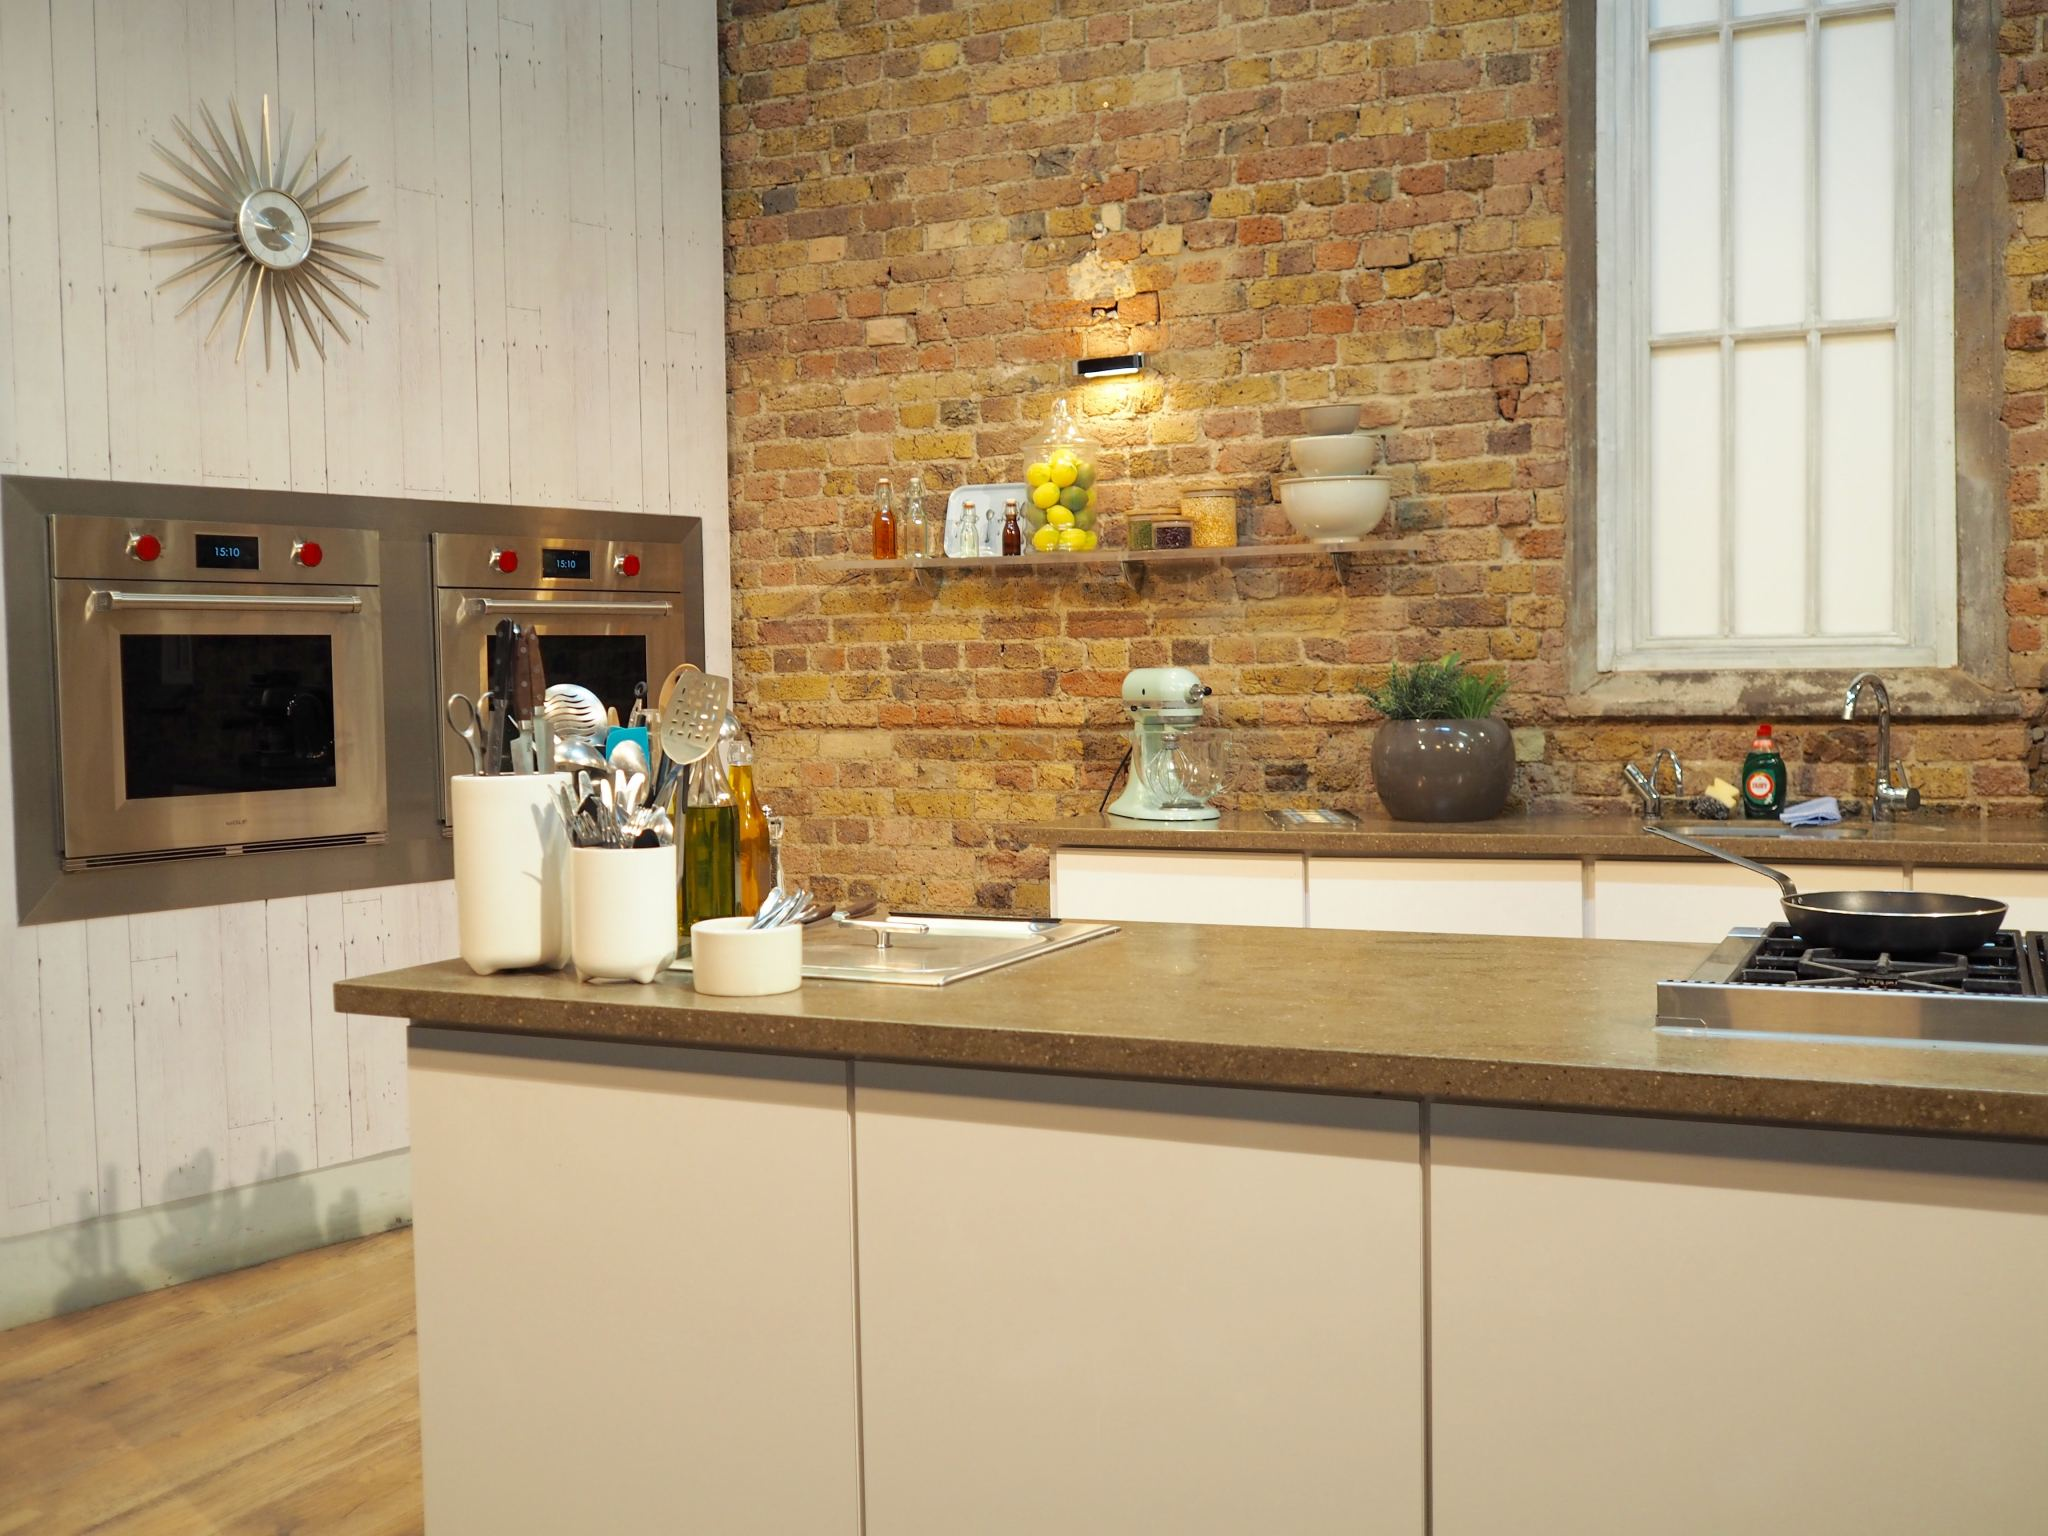 Cocoa Chelsea Iceland School of Fish, Saturday Kitchen Live omelette challenge tv set